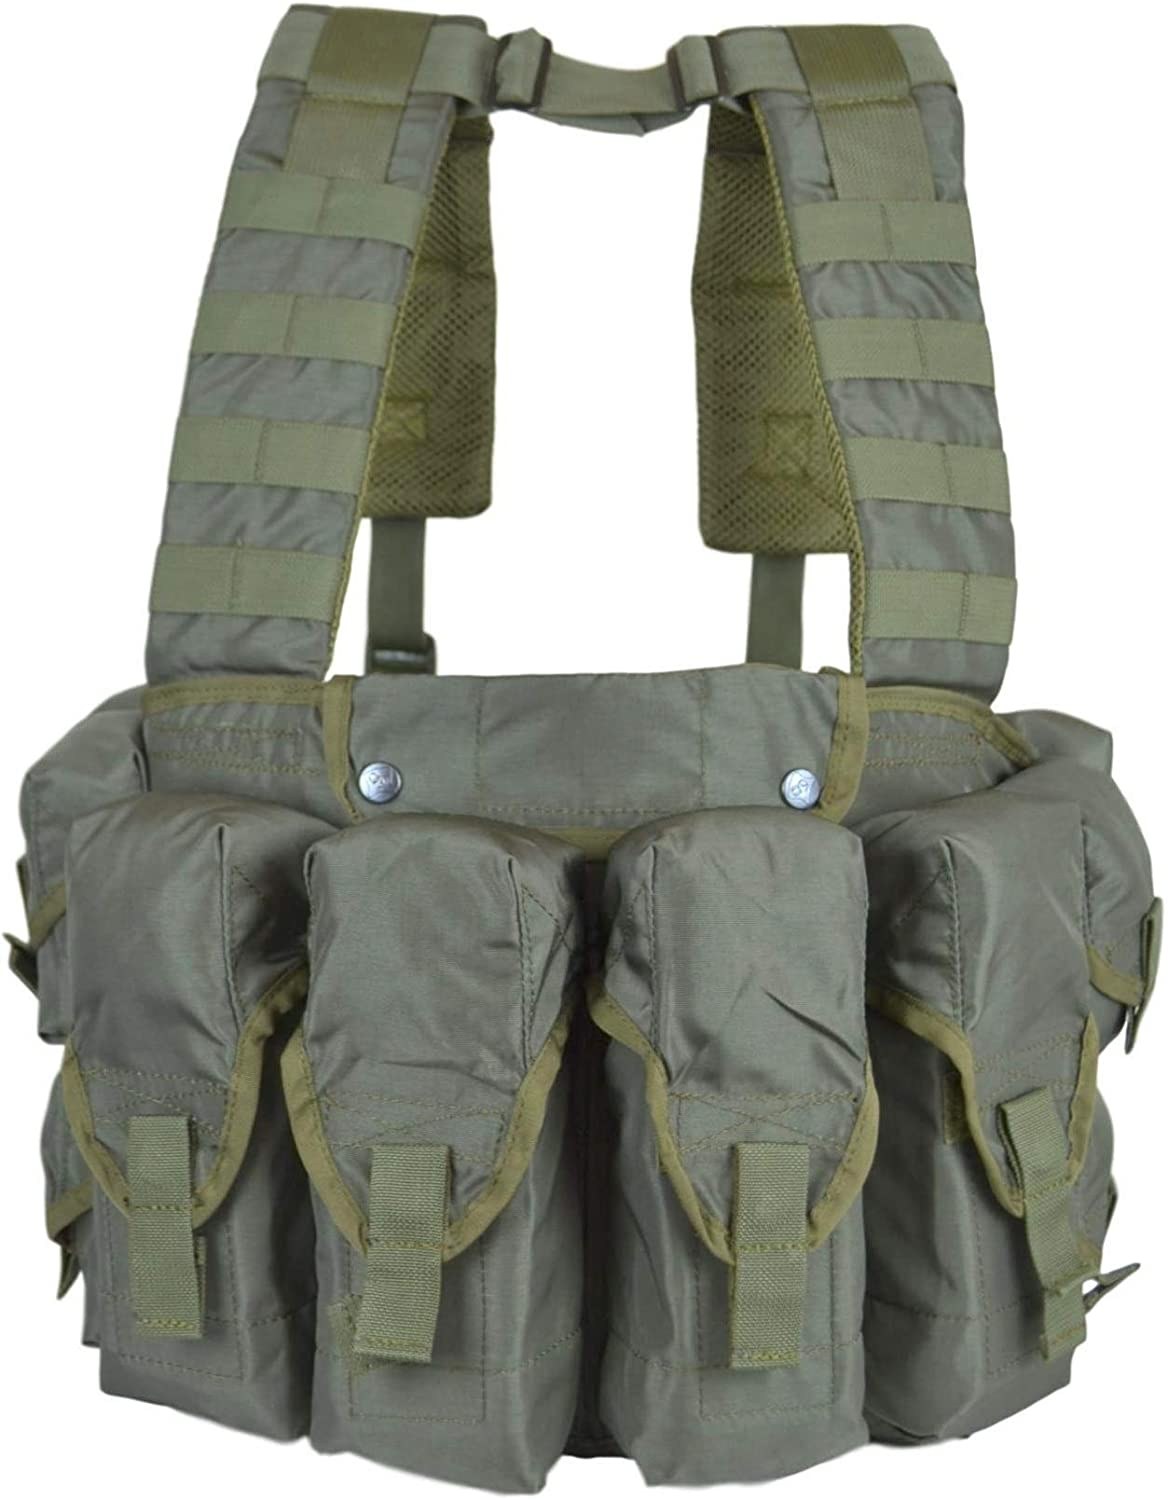 Photo of the Tactical Vest Lazutchik Scout Chest Rig in green color. Four same-sized pockets at the front.